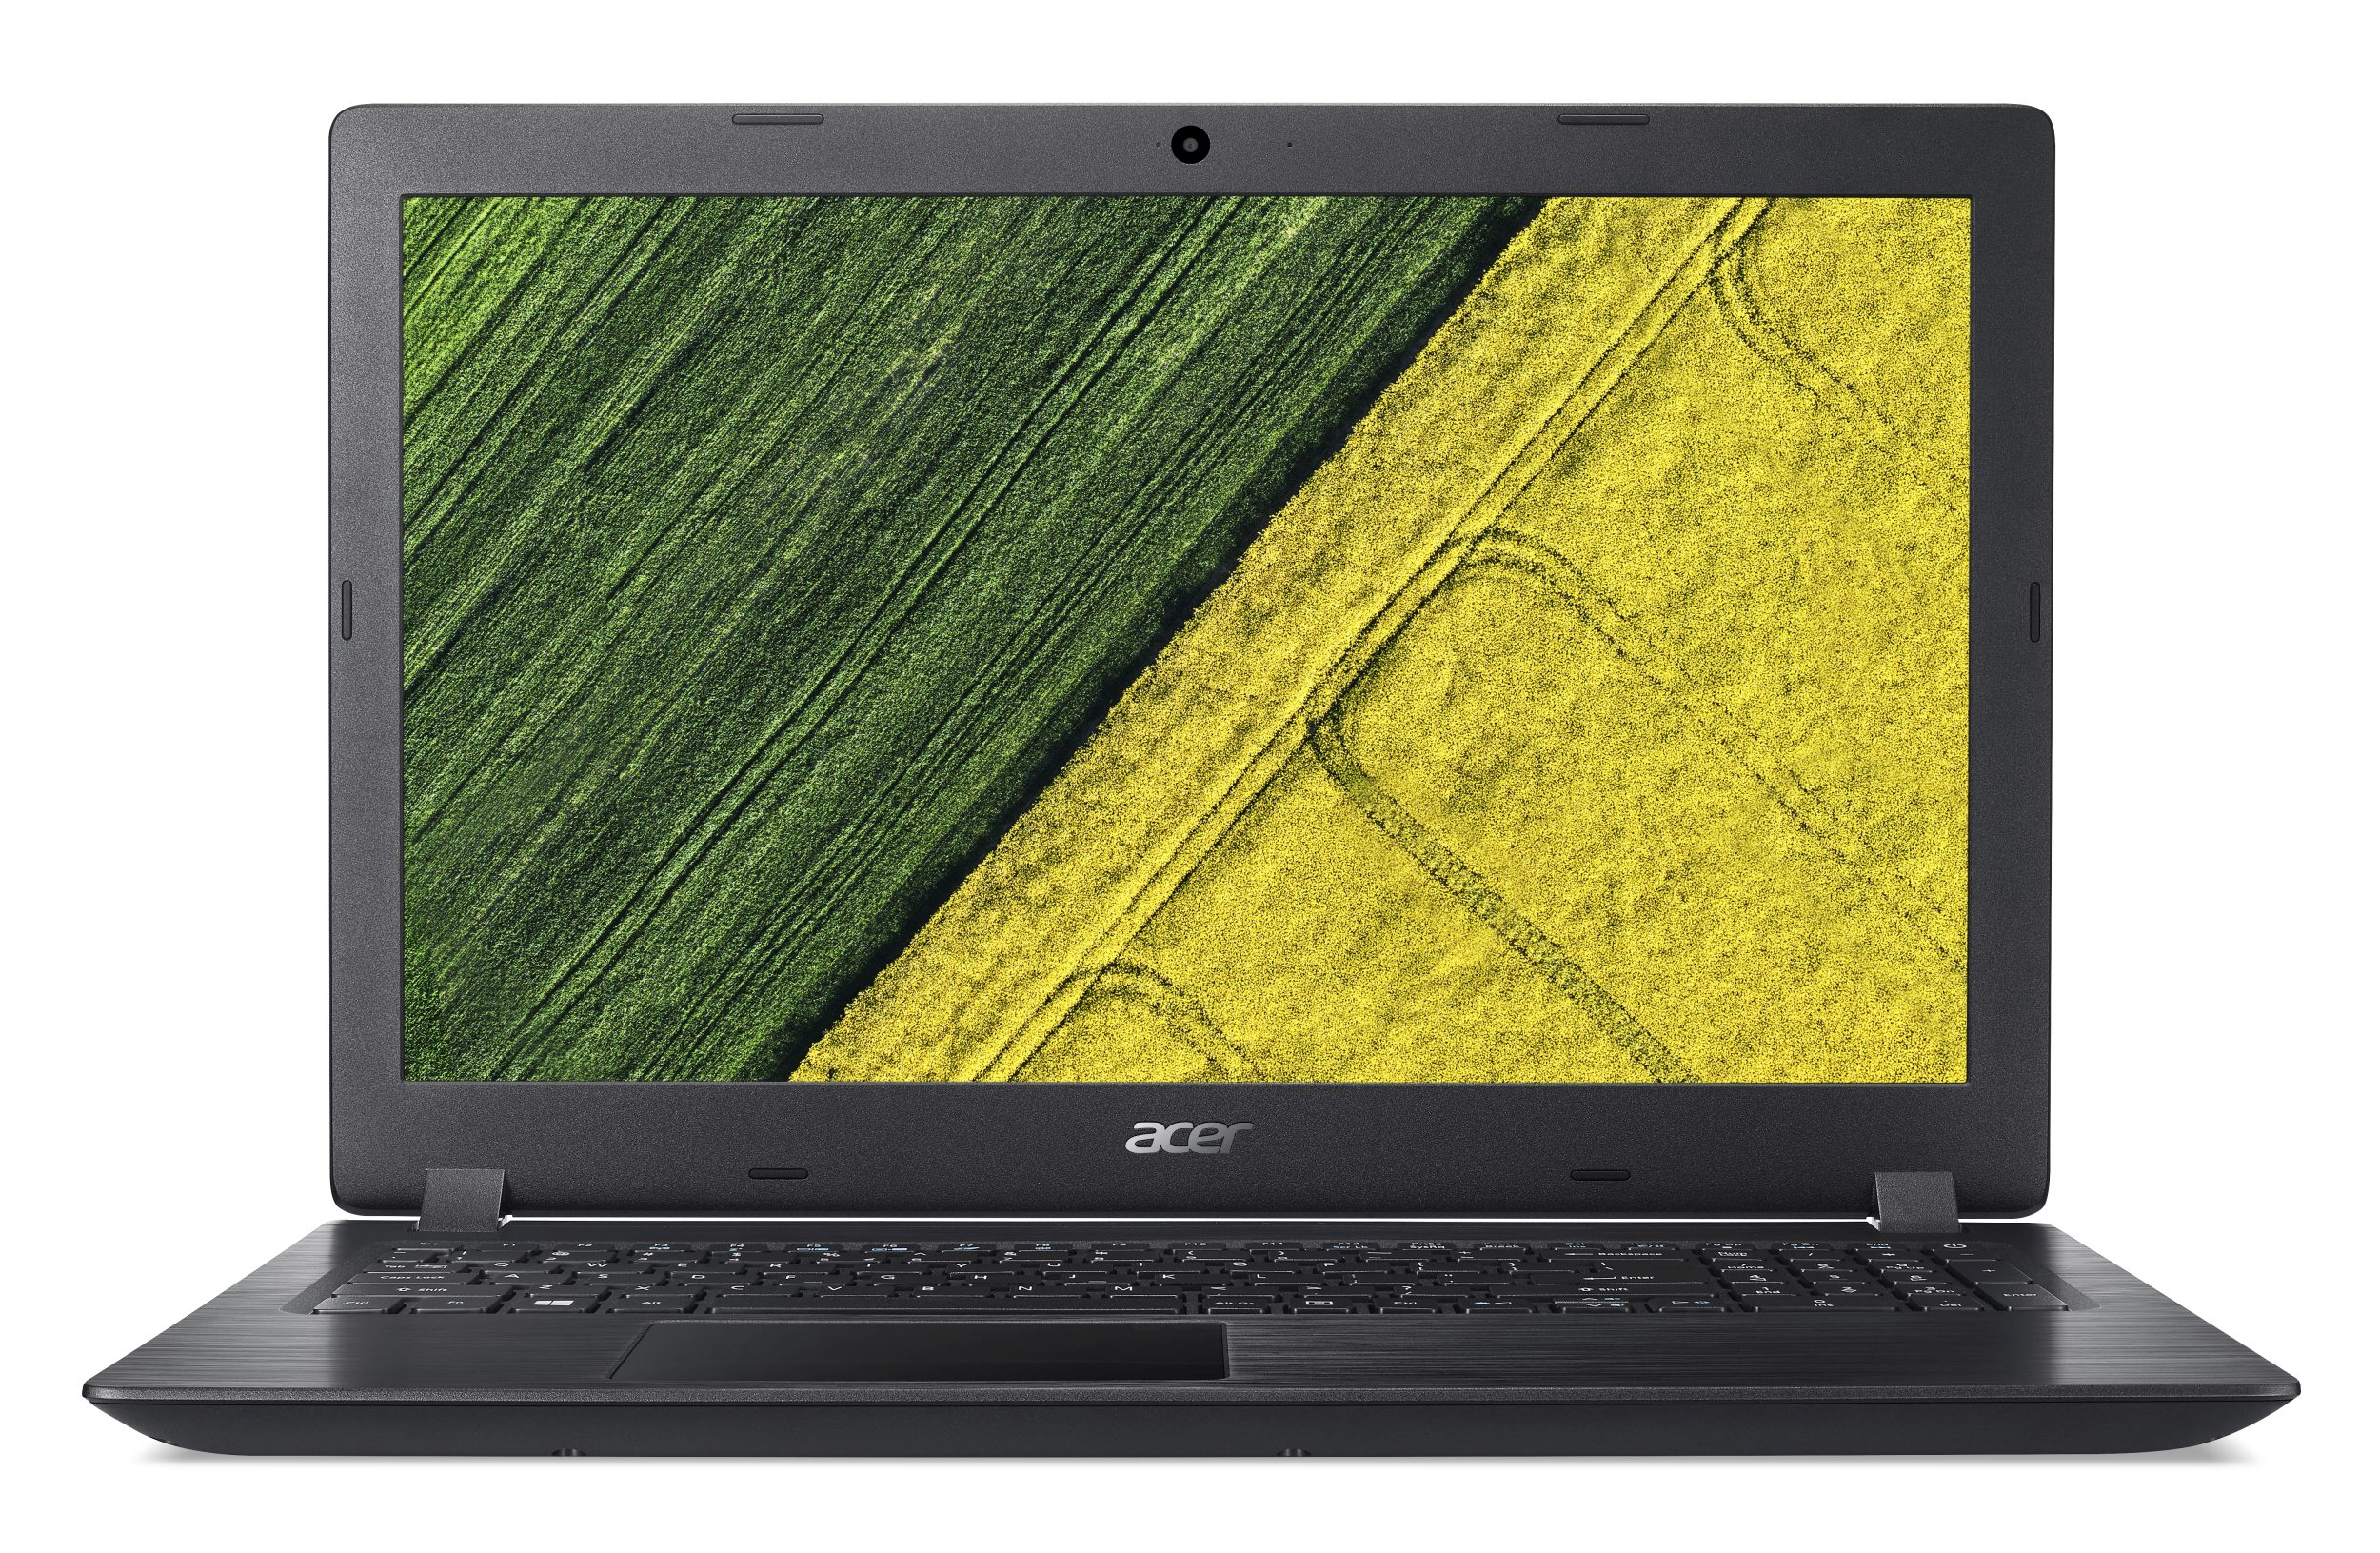 "Acer Aspire 3 (A315-31-P672) Pentium N4200/4GB+N/A/1TB/HD Graphics/15,6"" FHD LED matný/BT/Linux/Black"